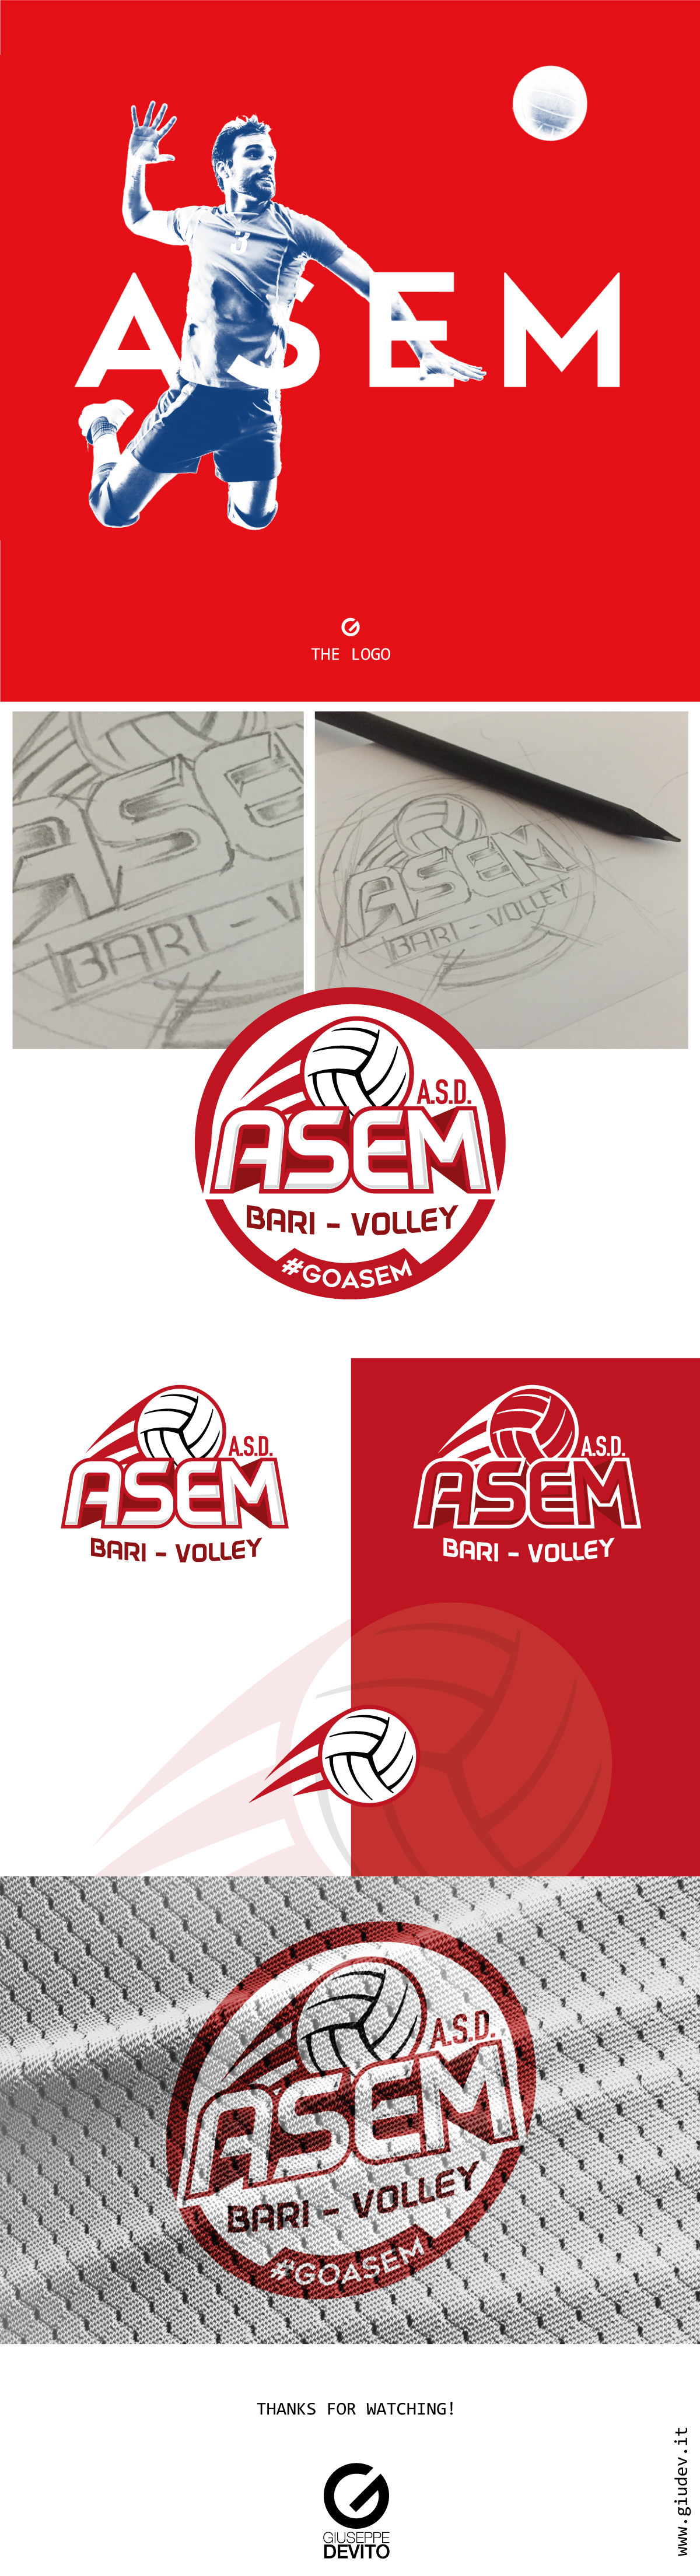 asem-bari-volley-logo-design